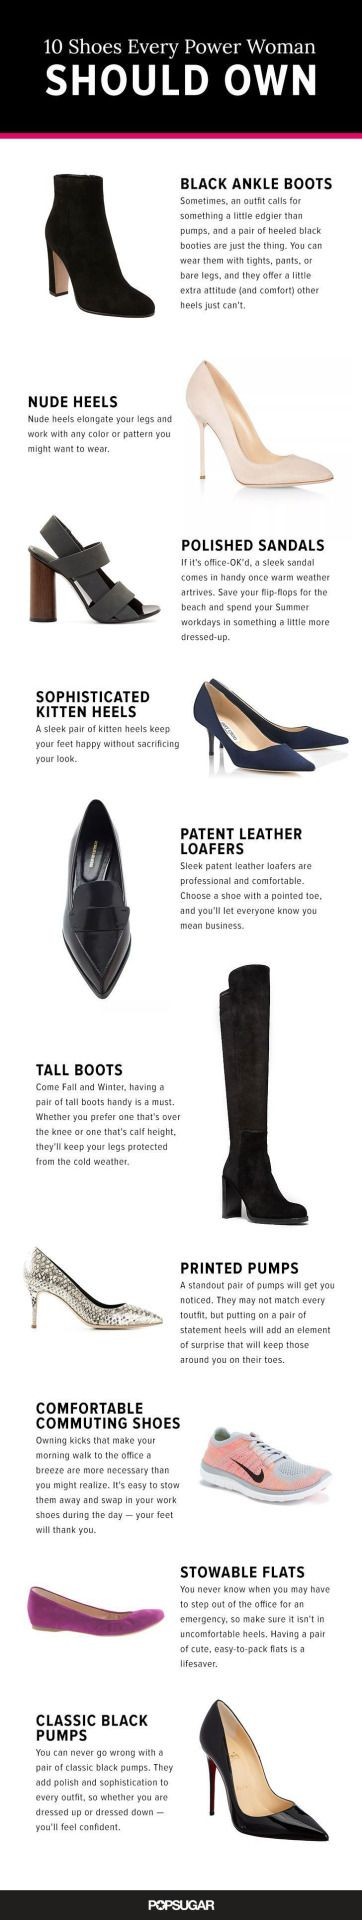 10 shoes every power woman should own!